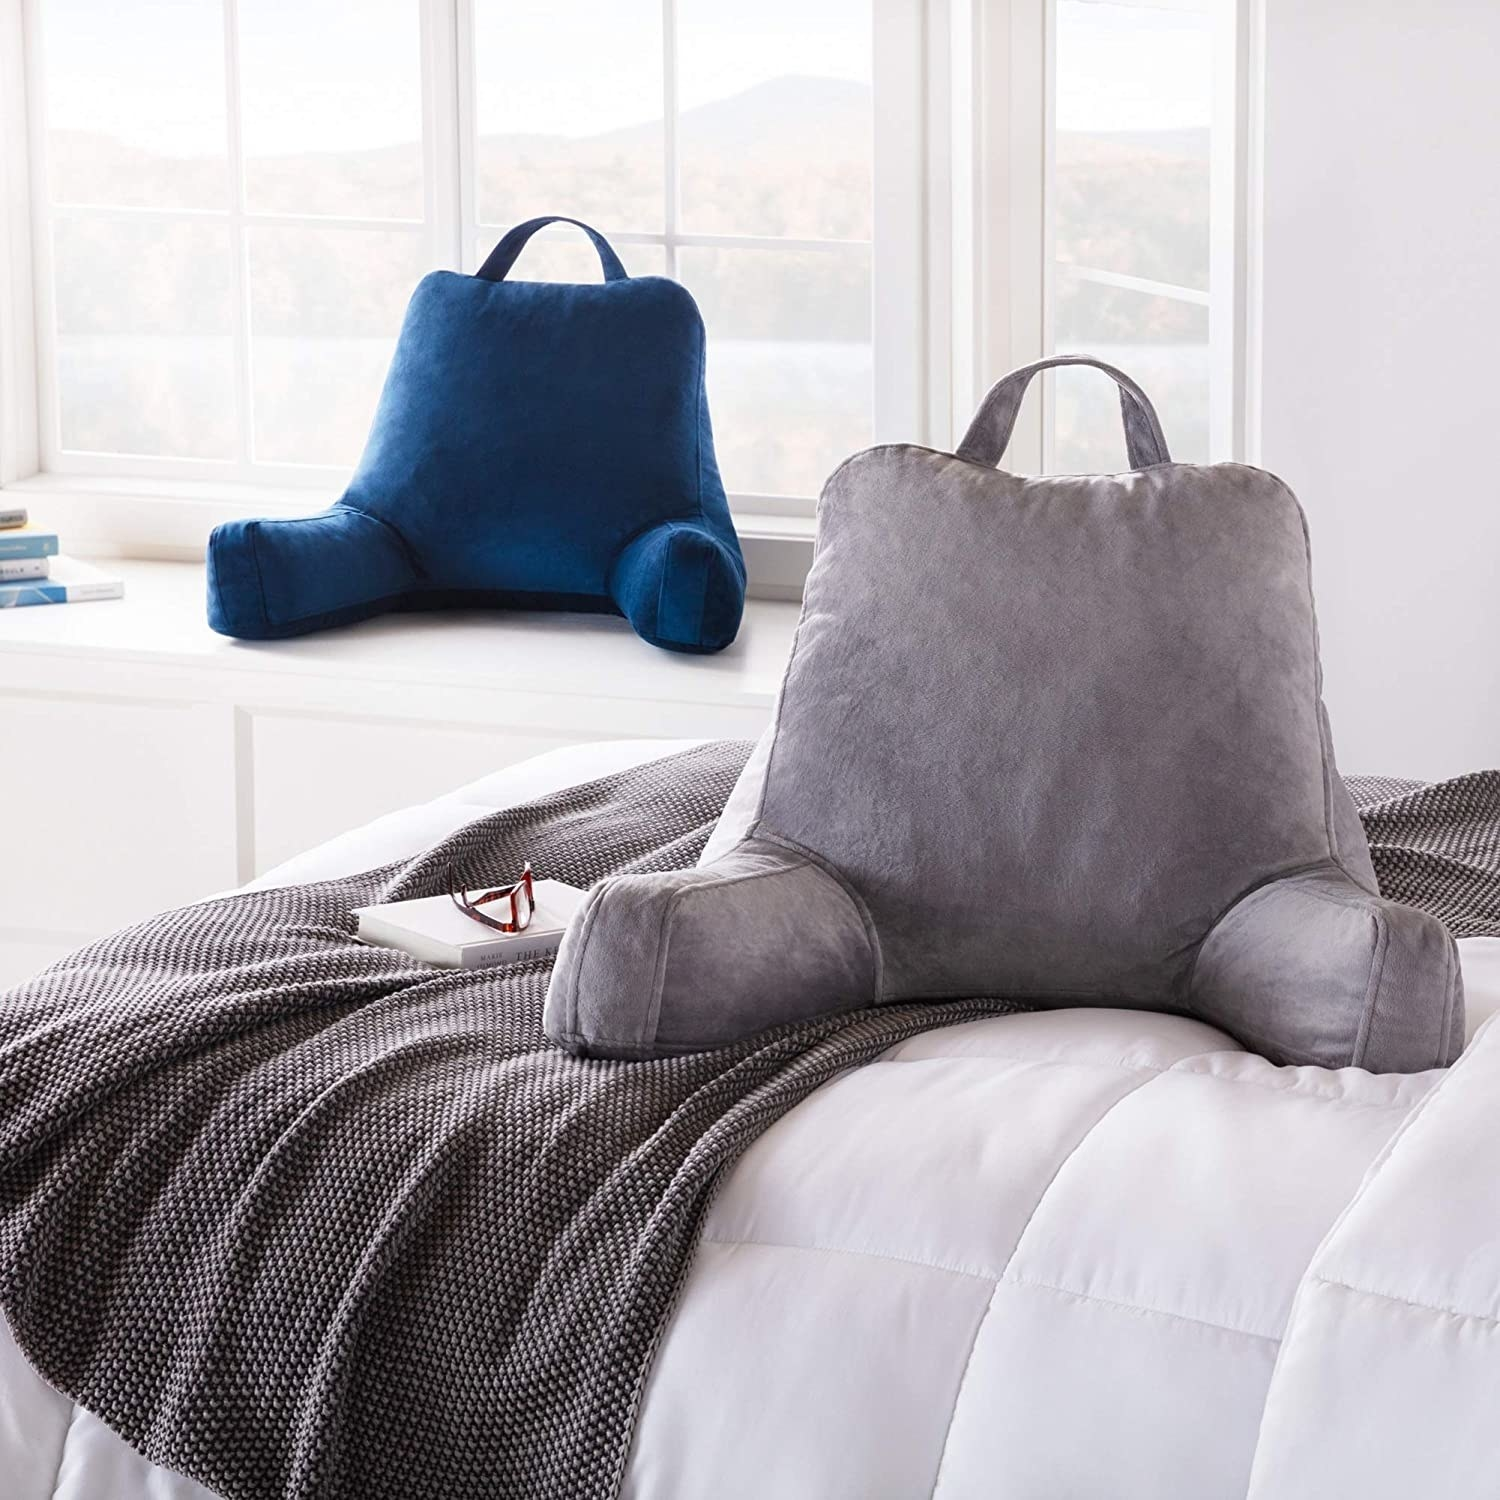 One gray sitting pillow placed on bed and one navy sitting pillow placed on window ledge